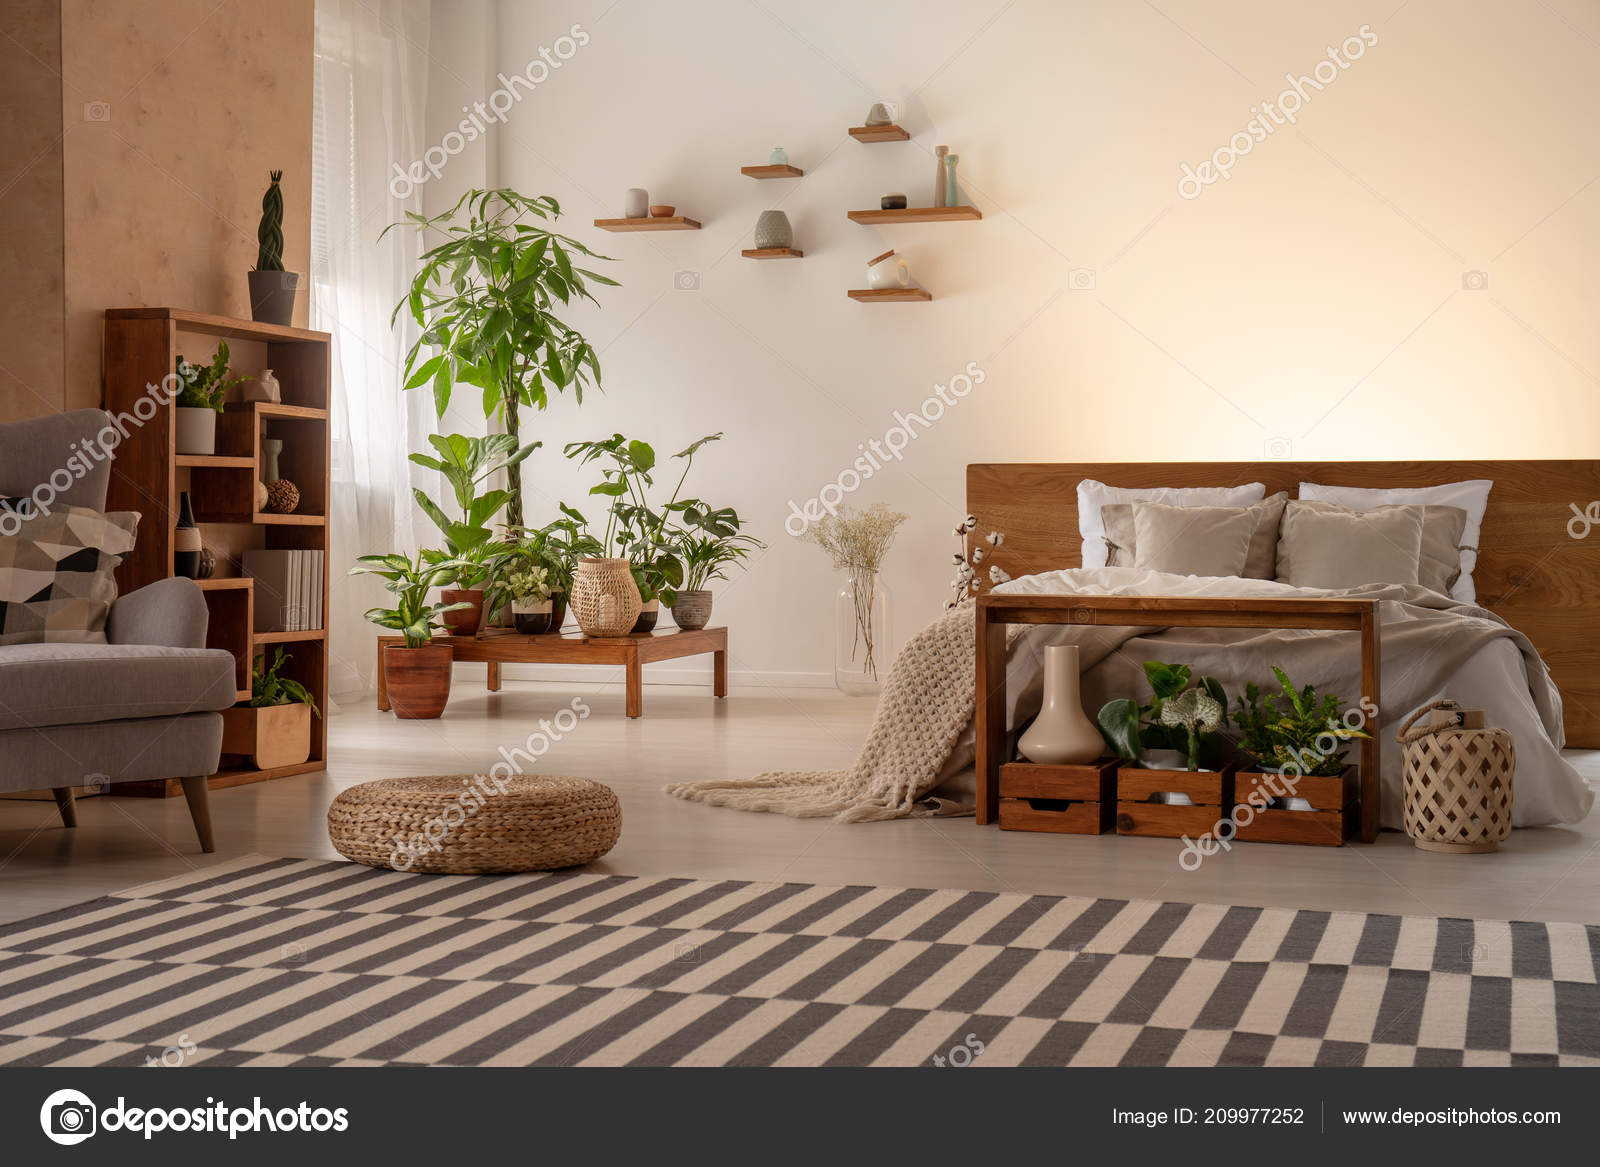 Warm Bedroom Interior Plants Shelves Striped Rug Pouf Bed Armchair Stock Photo C Photographee Eu 209977252